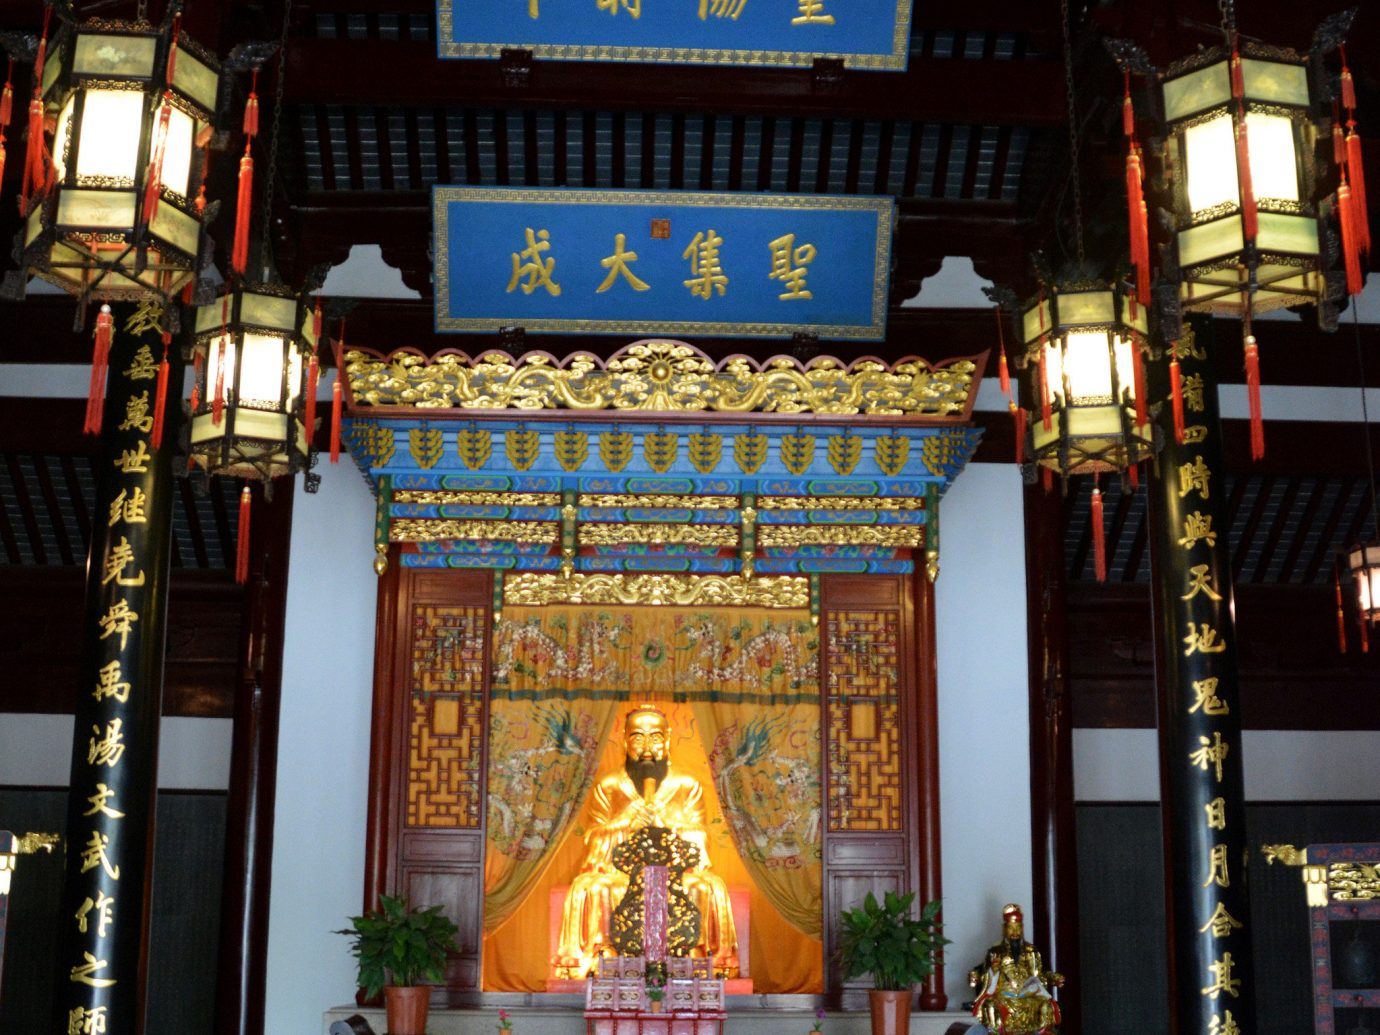 China china rose Shanghai Travel Tips Trip Ideas landmark shrine temple tourist attraction night place of worship building